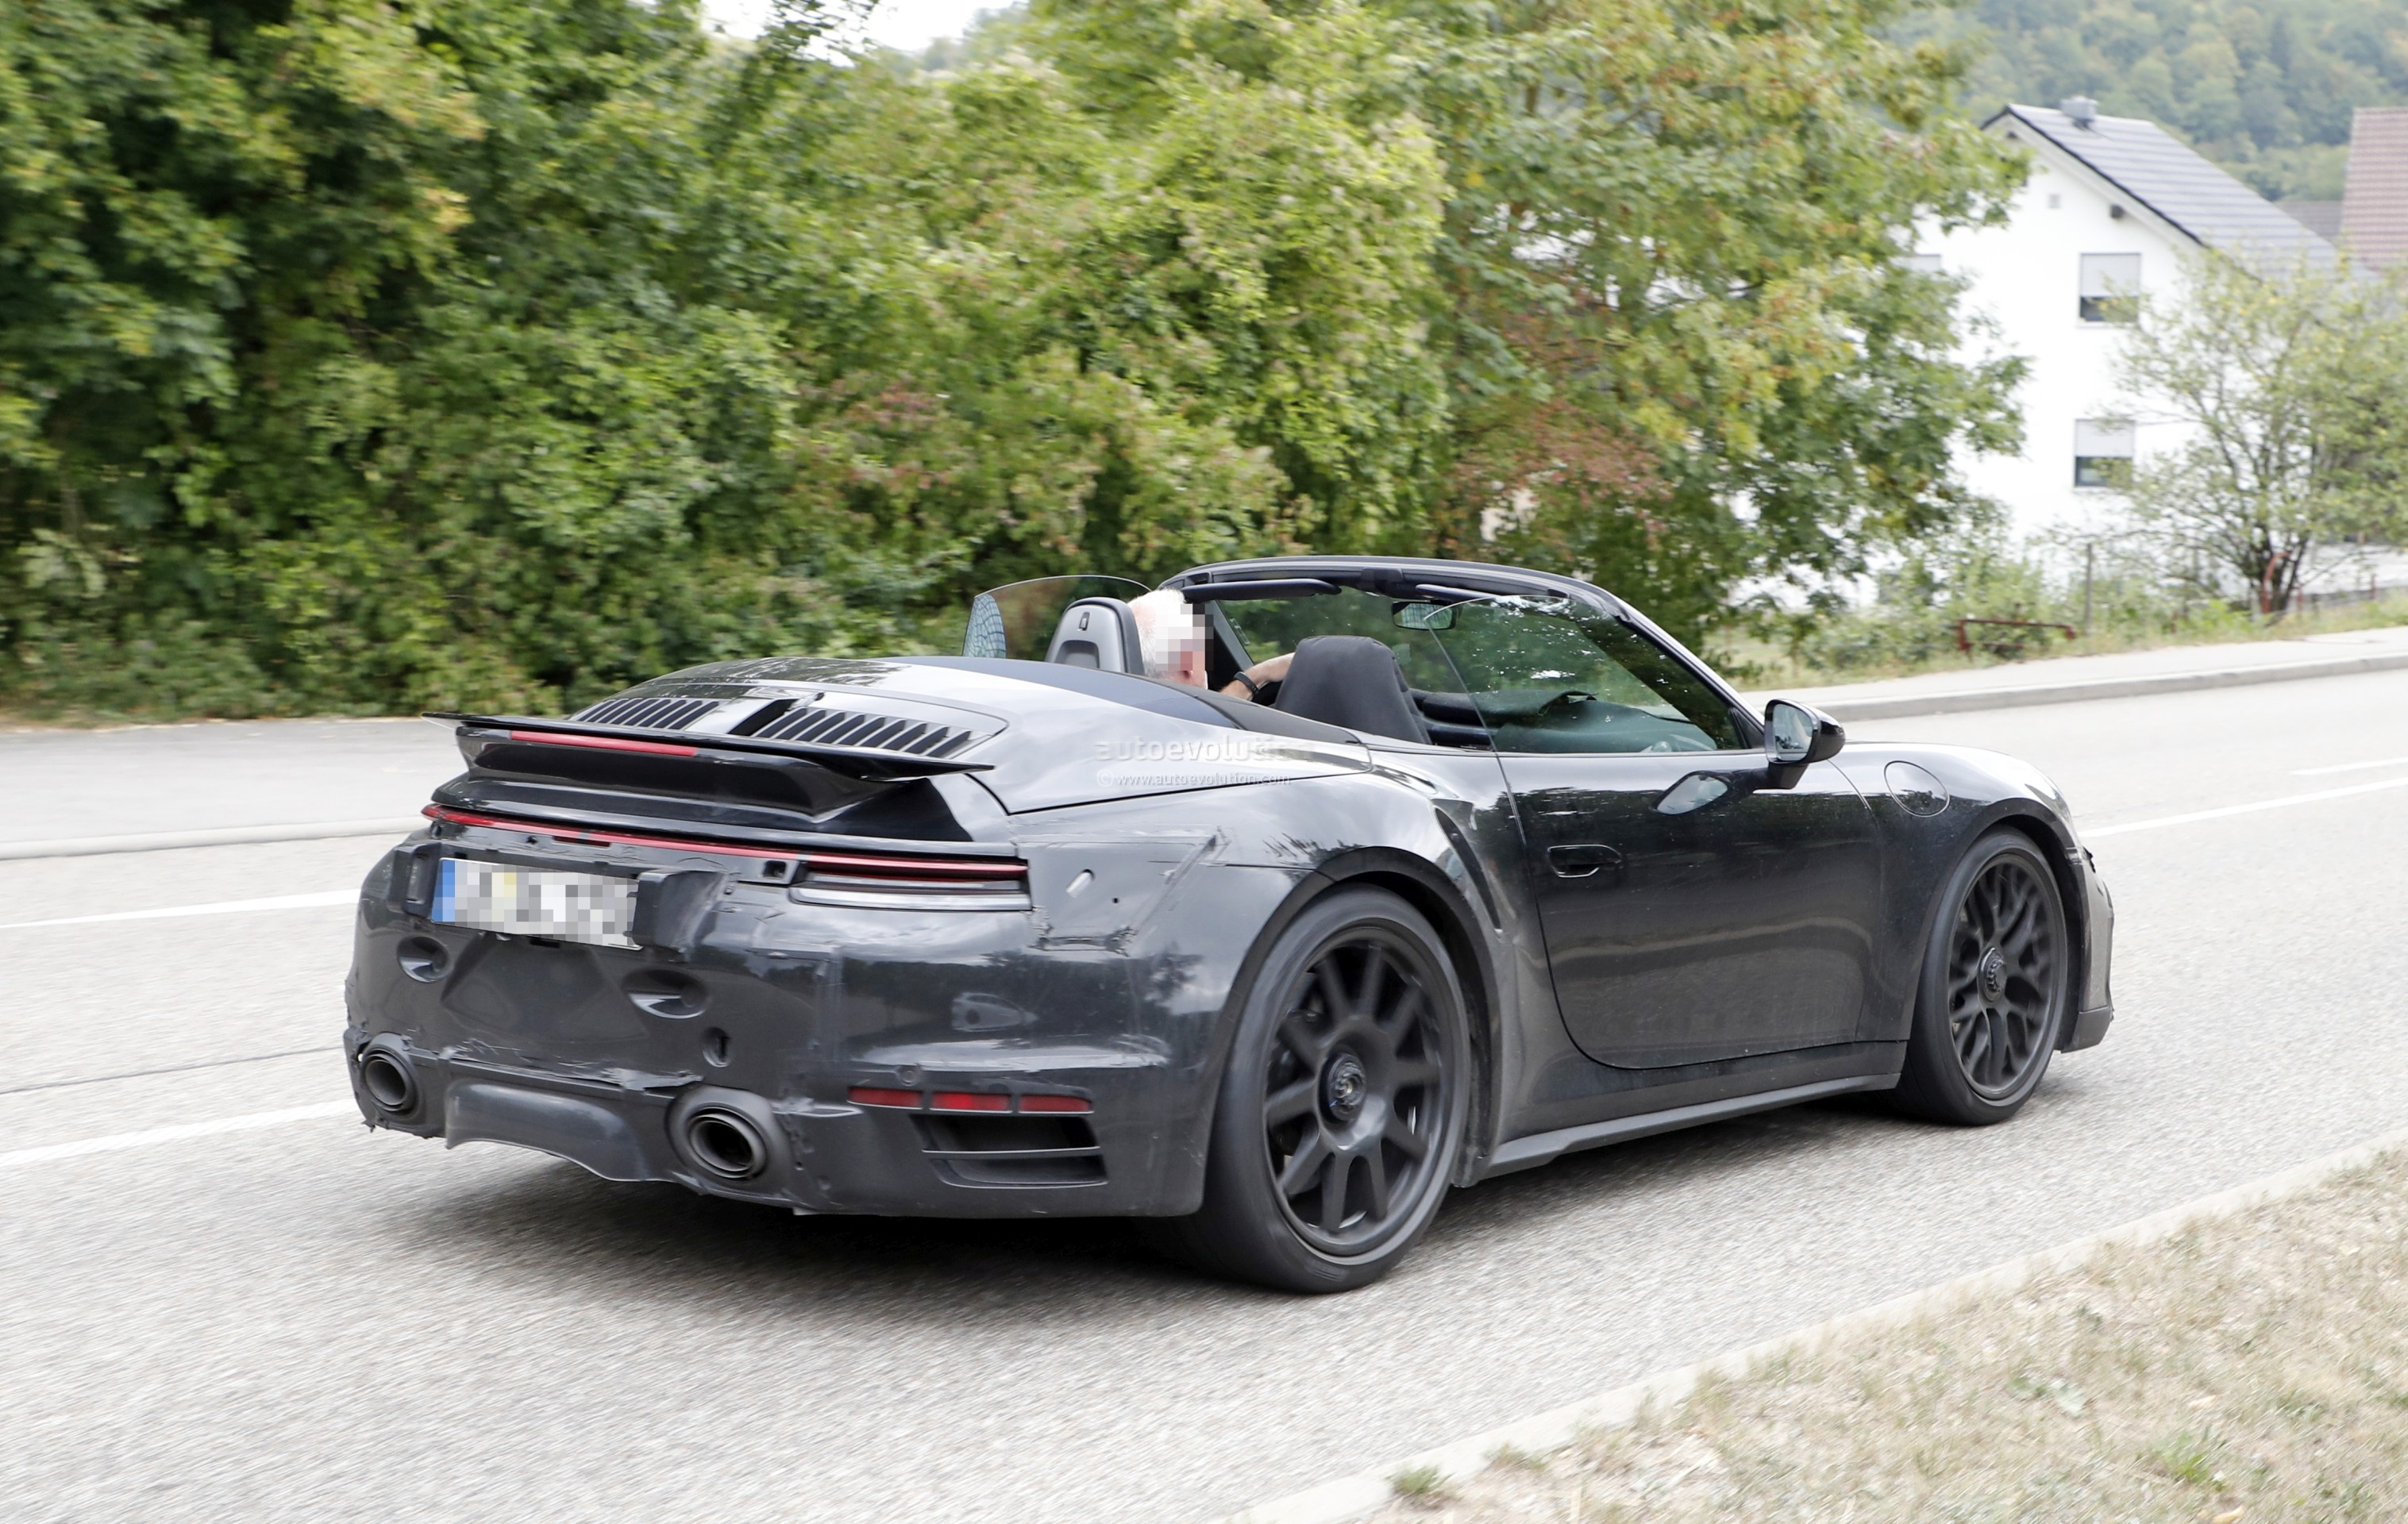 2020 Porsche 911 Turbo Cabriolet Spotted With Top Down